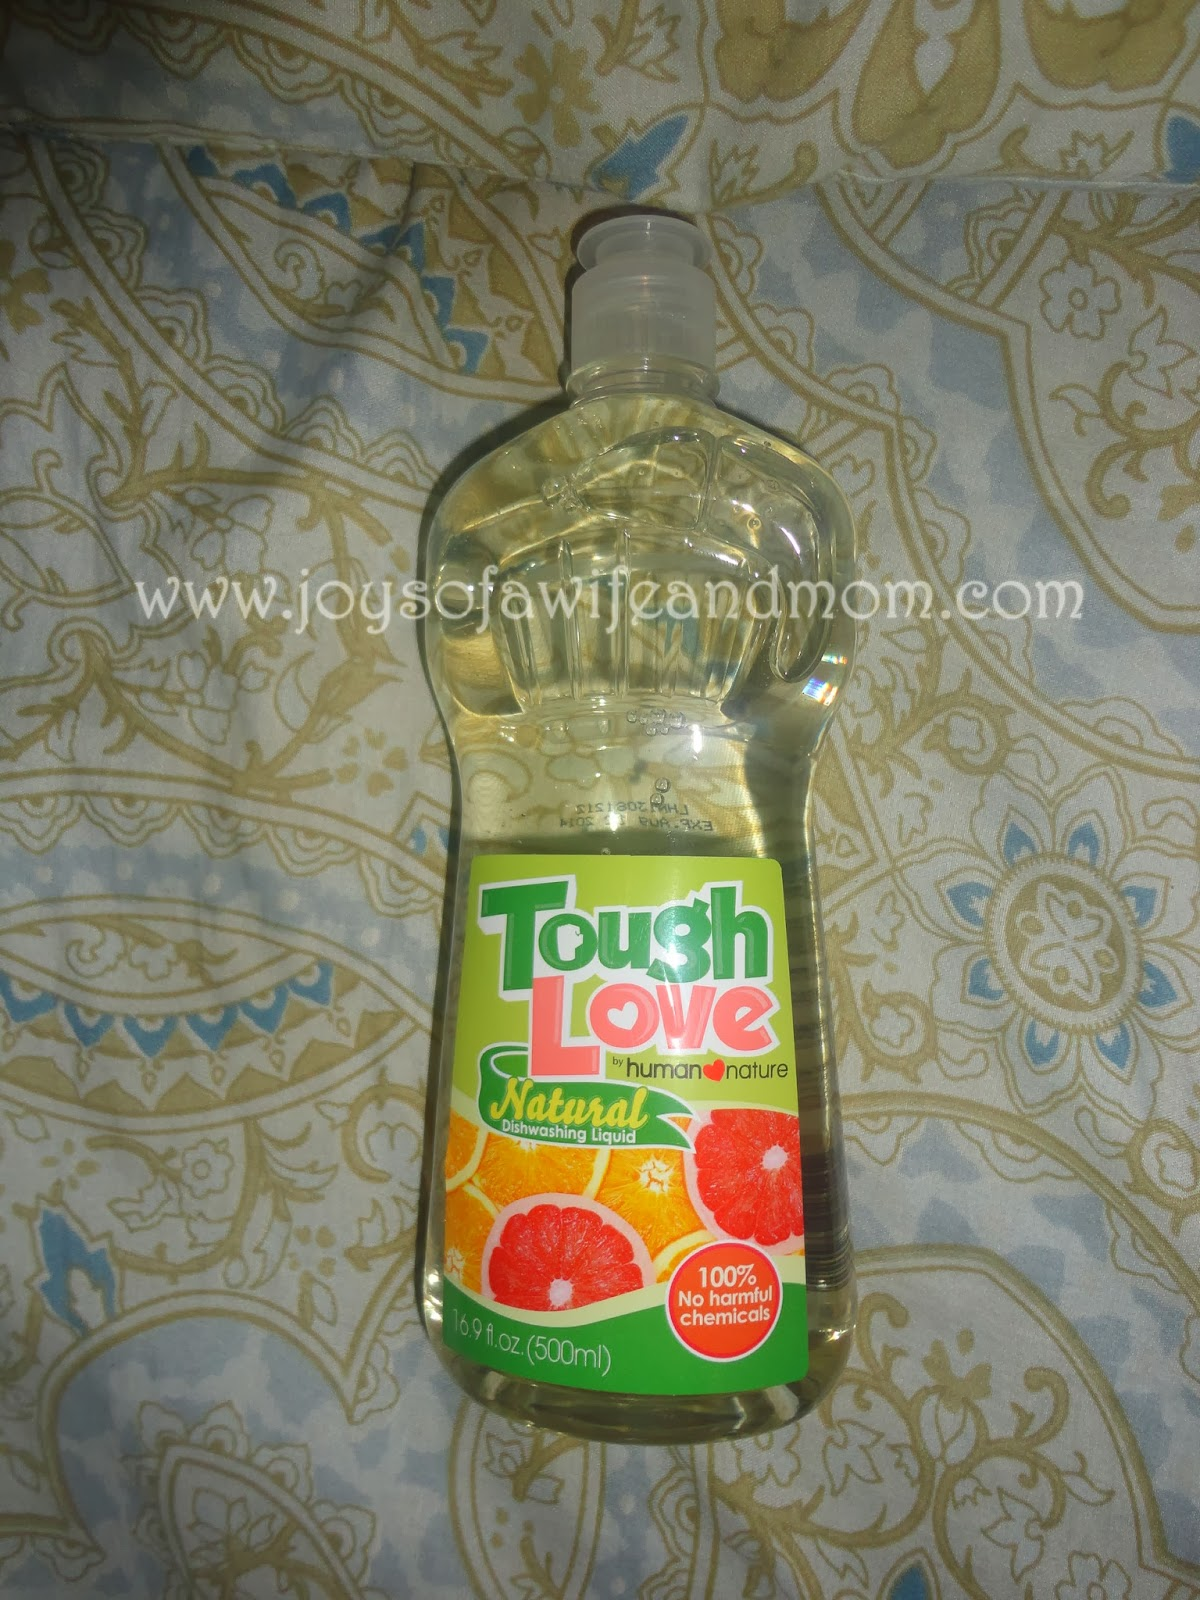 Joys Of A Wife And Mom Product Review Human Heart Nature